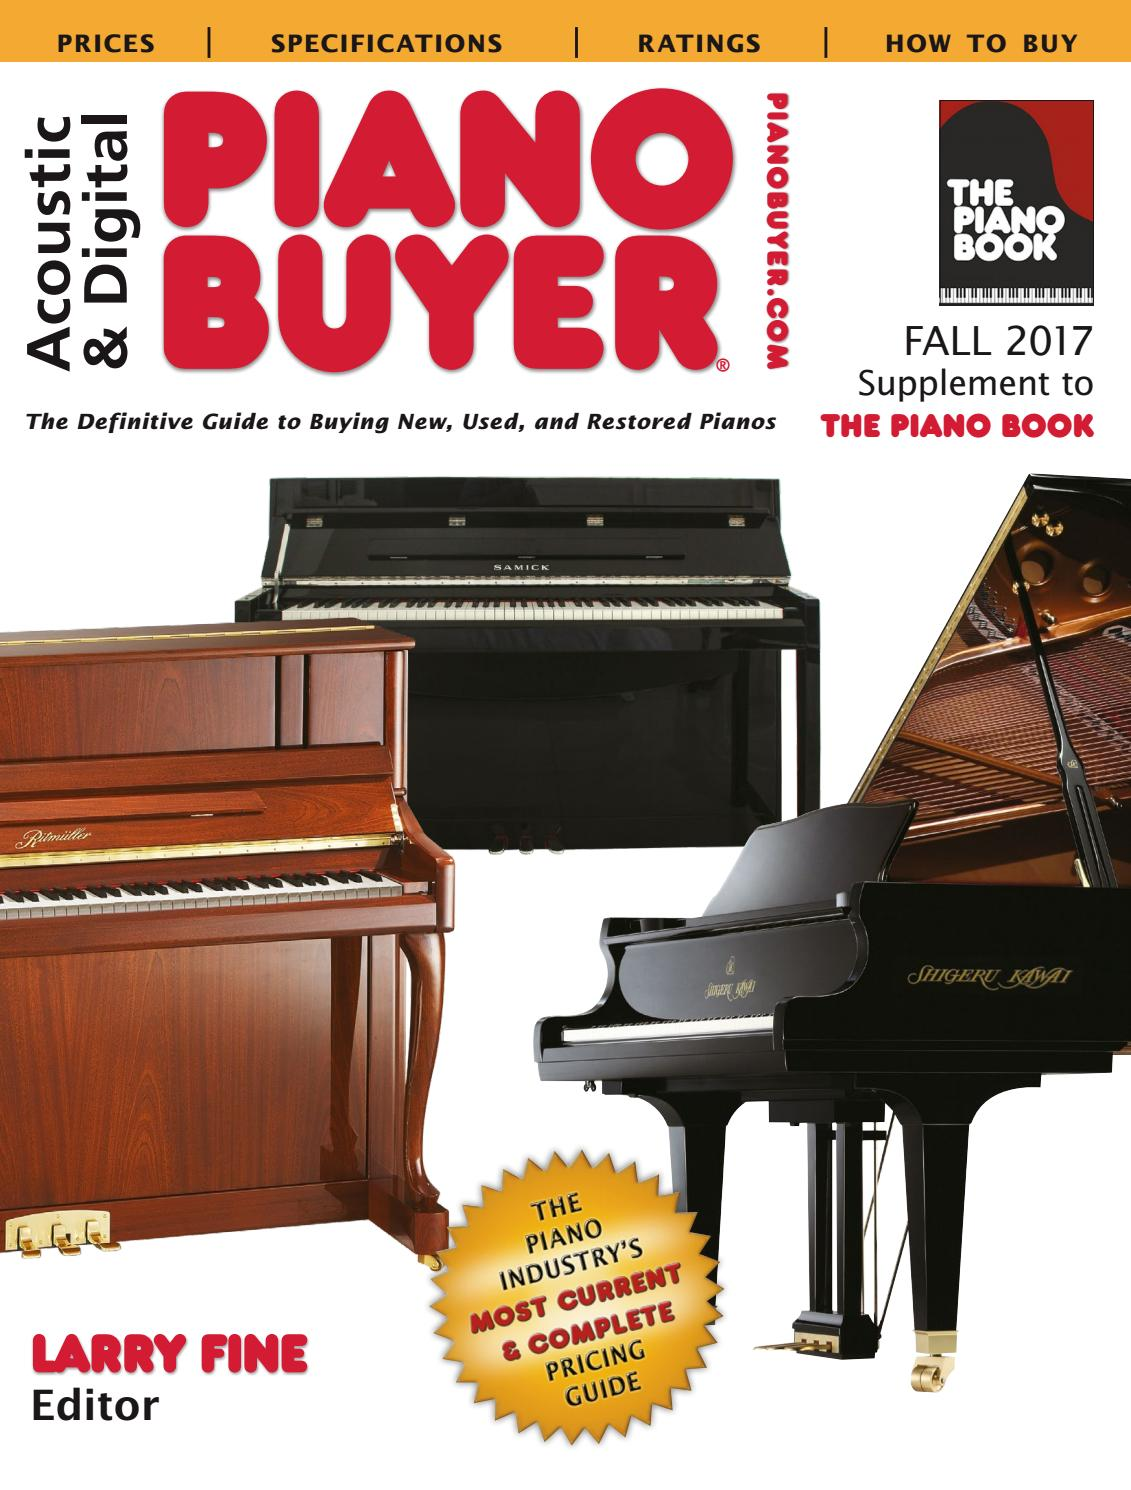 UPRIGHT PIANO ACTION MODEL FULL KIT Learn to Regulate /& Repair Piano Tuning PTG